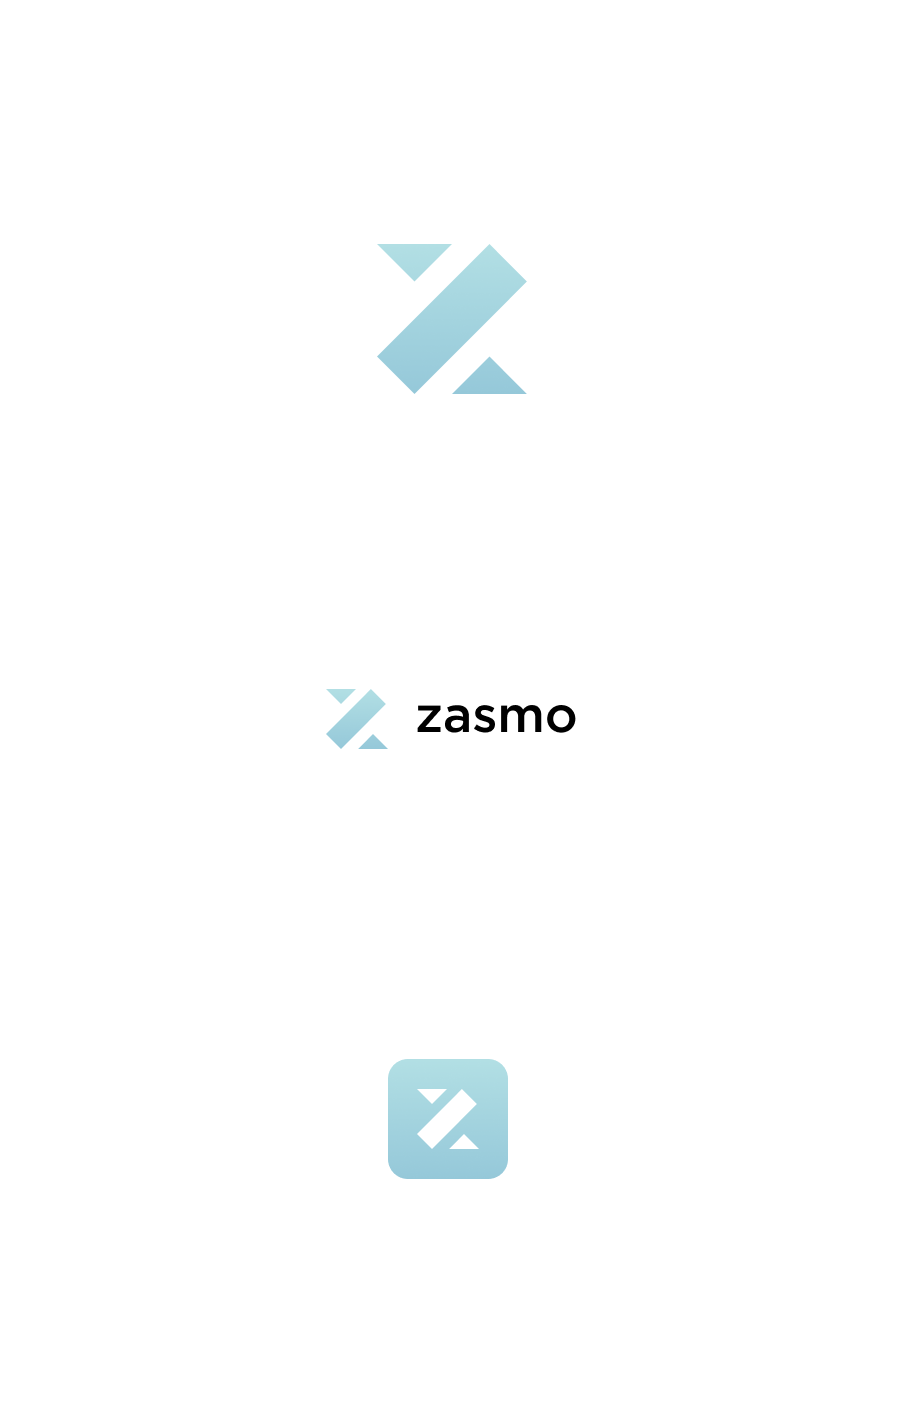 Zasmo project logo images